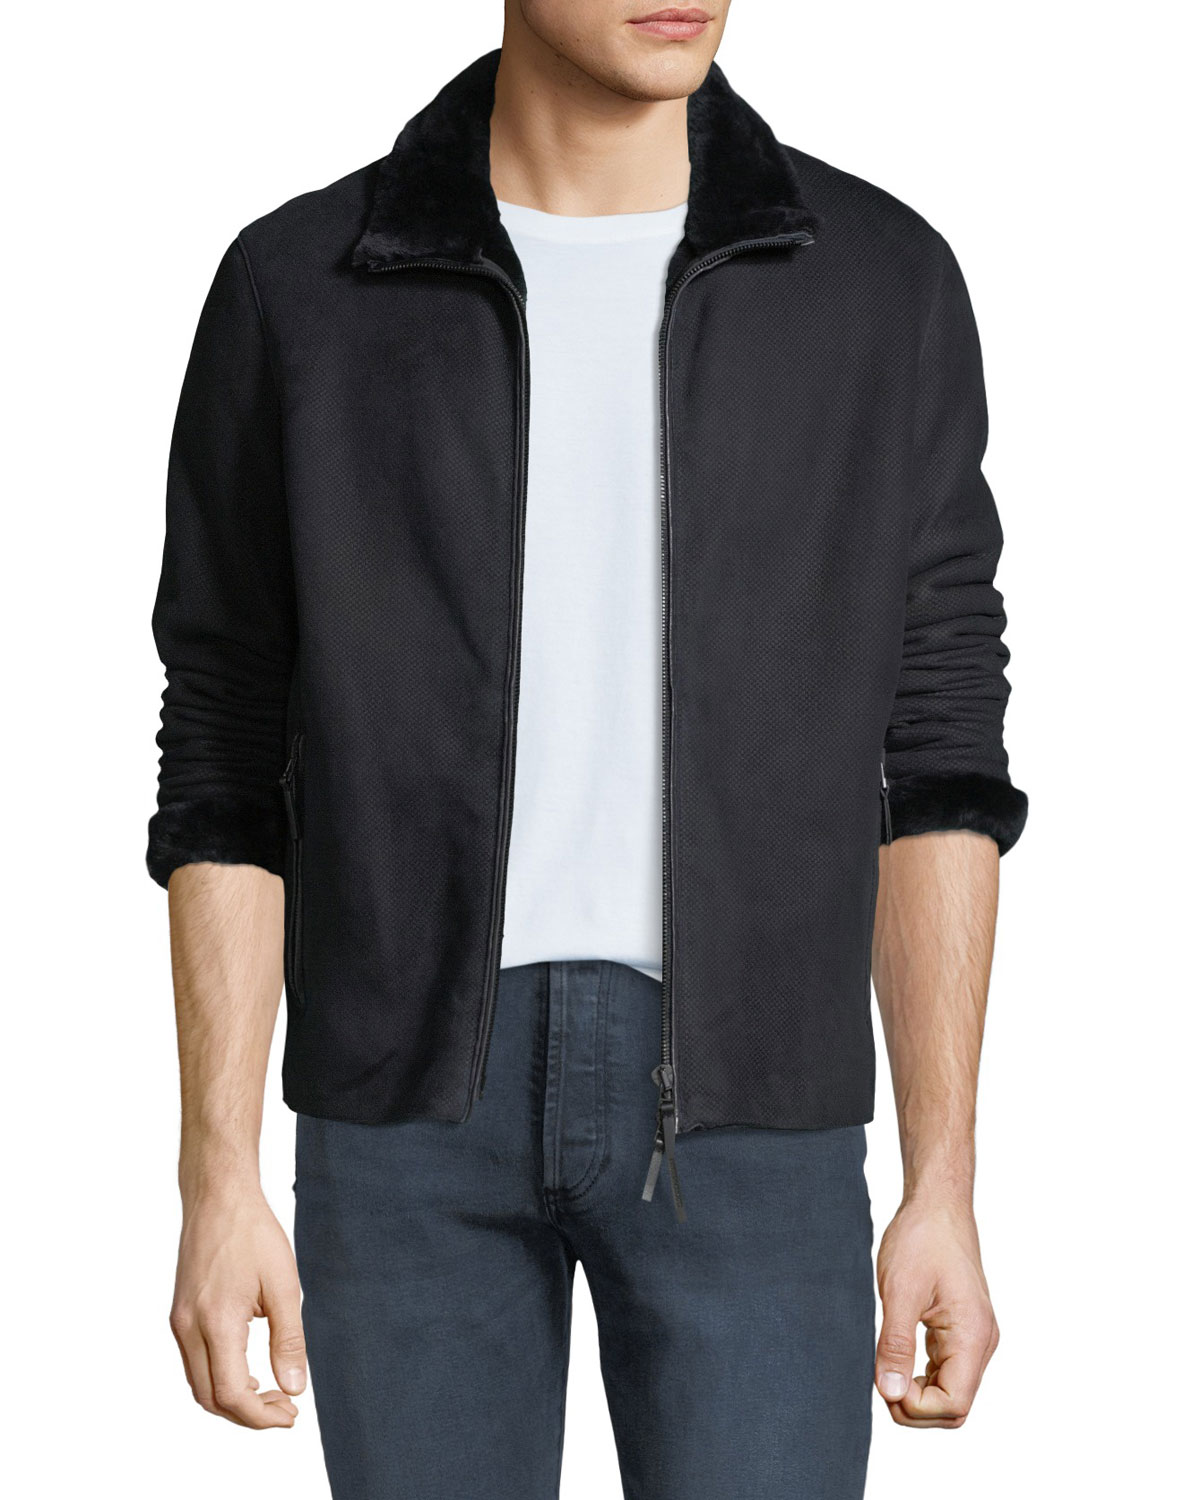 32a14398 Men's Shearling-Lined Suede Jacket